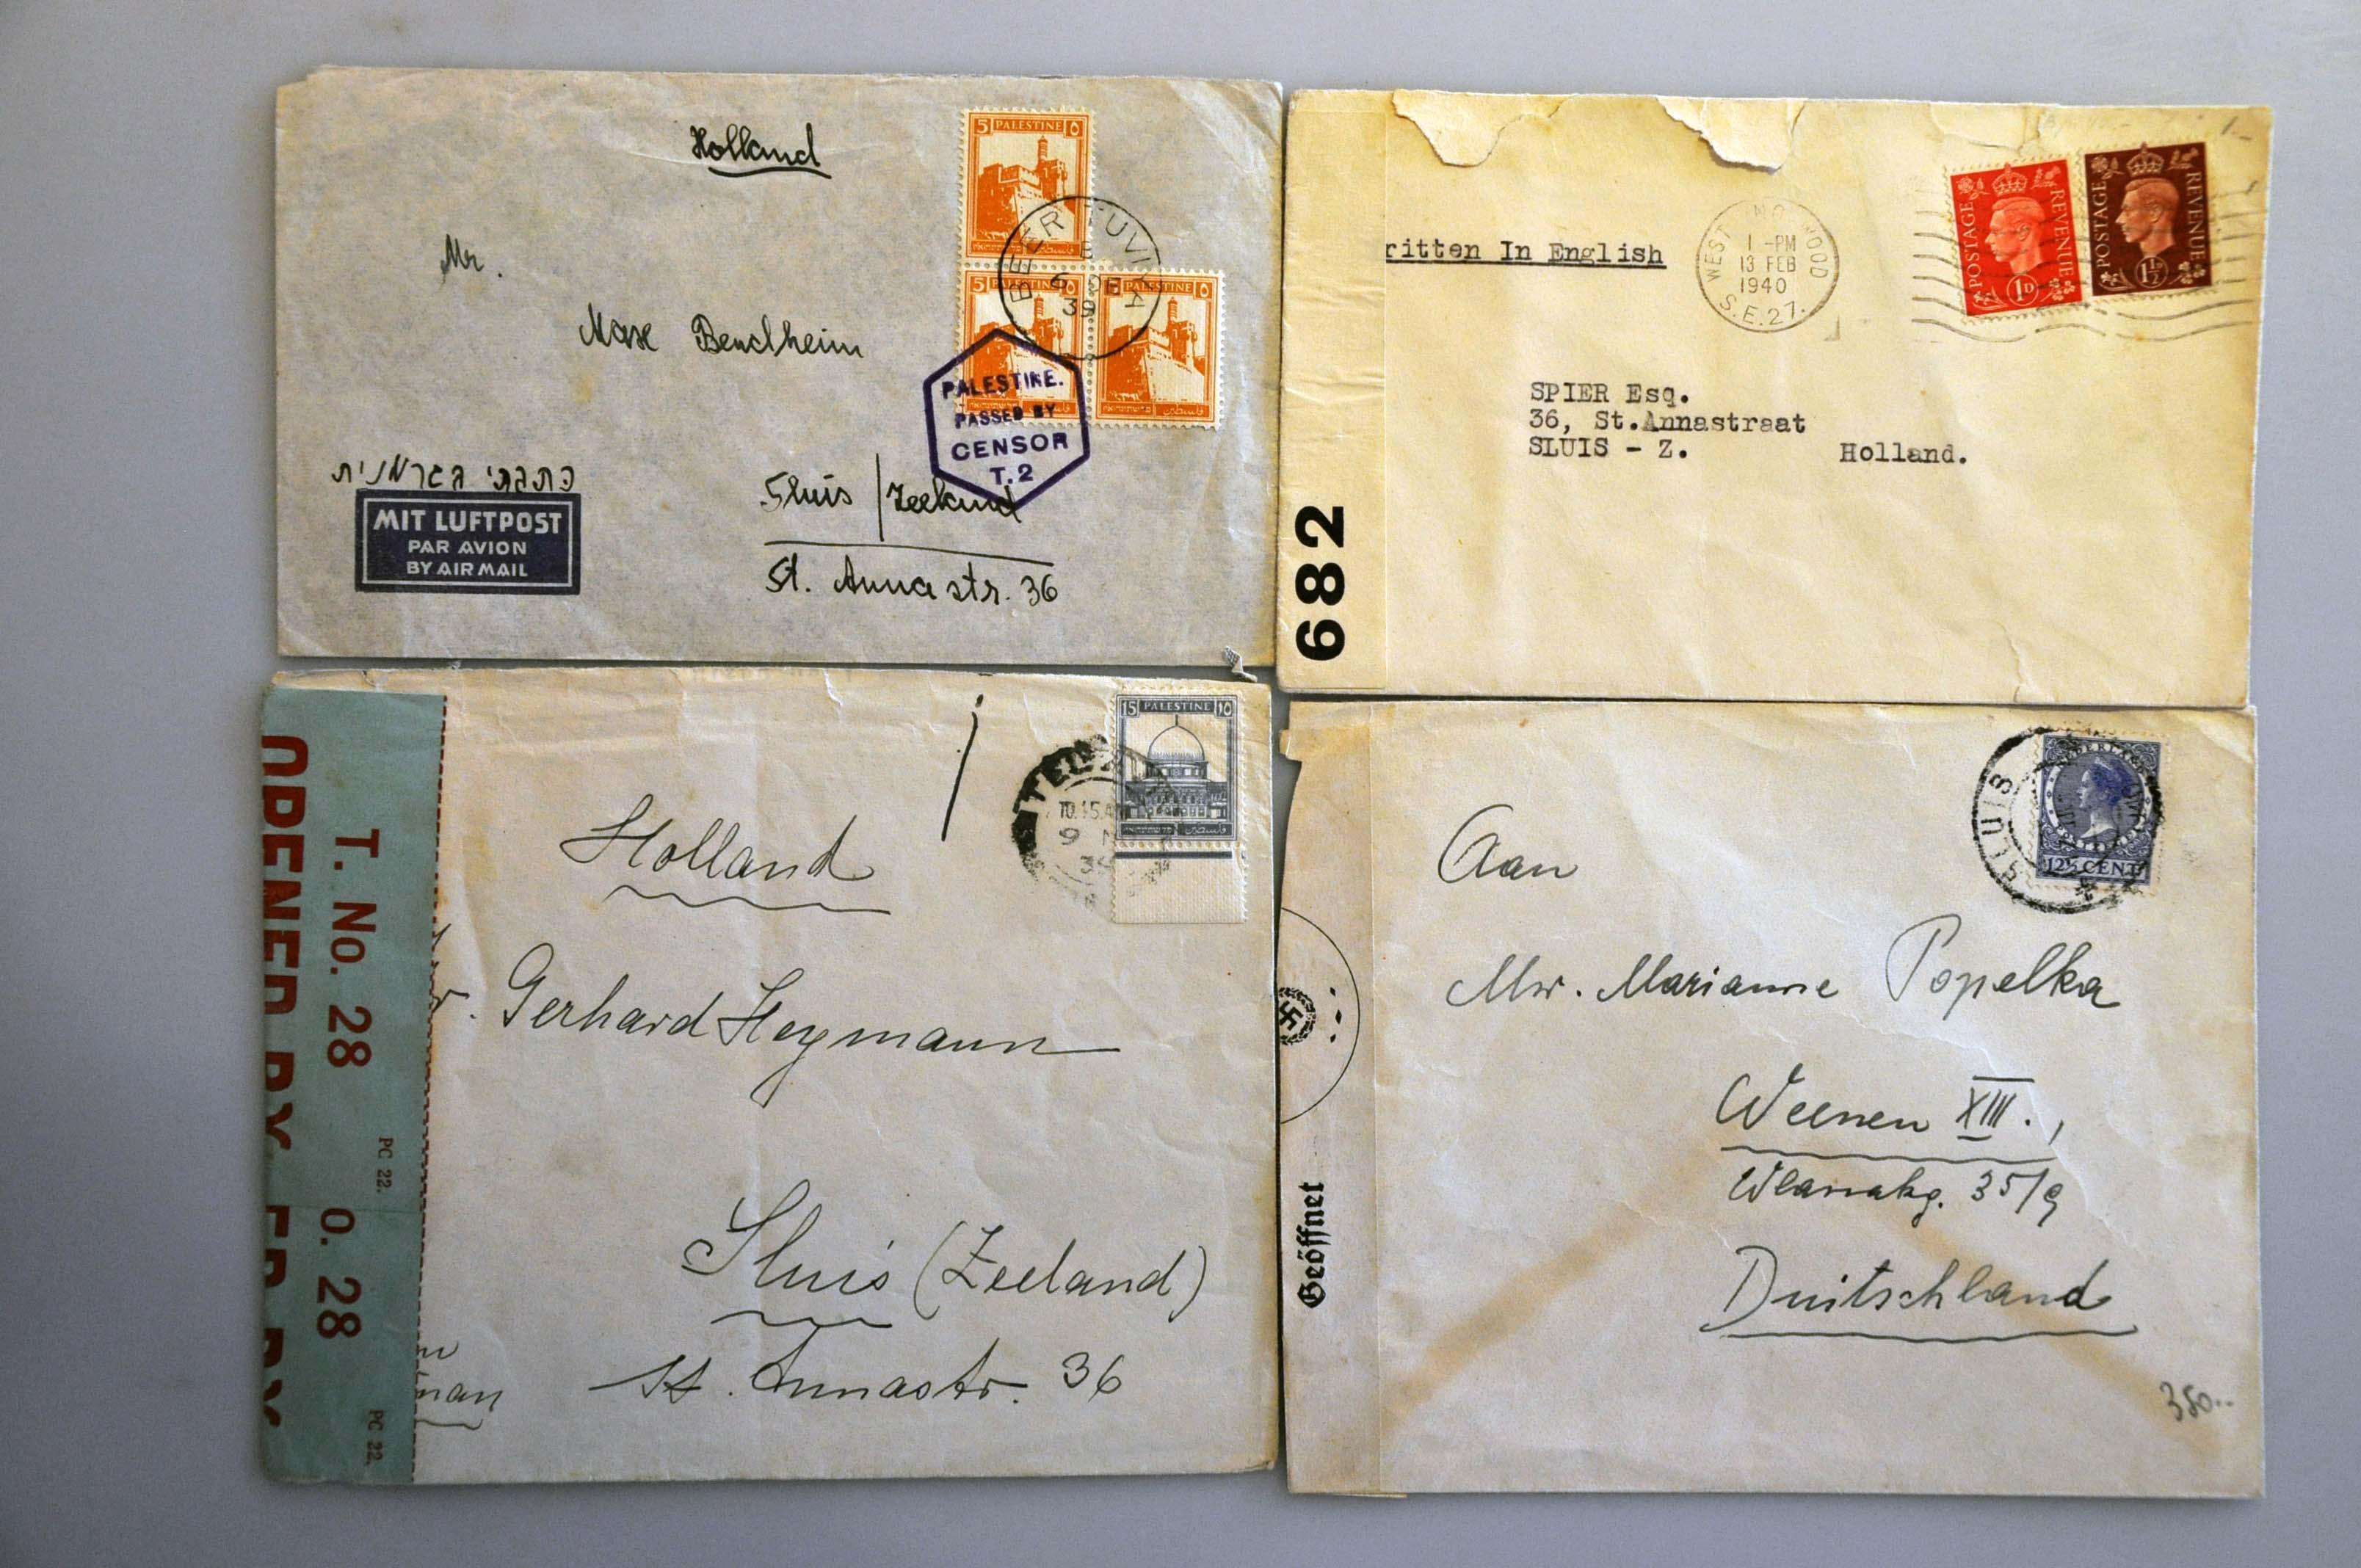 Lot 1005 - Topics and Miscellaneous world war ii -  Corinphila veilingen Auction 235: Postal History WW2 - The Stefan Drukker Collection